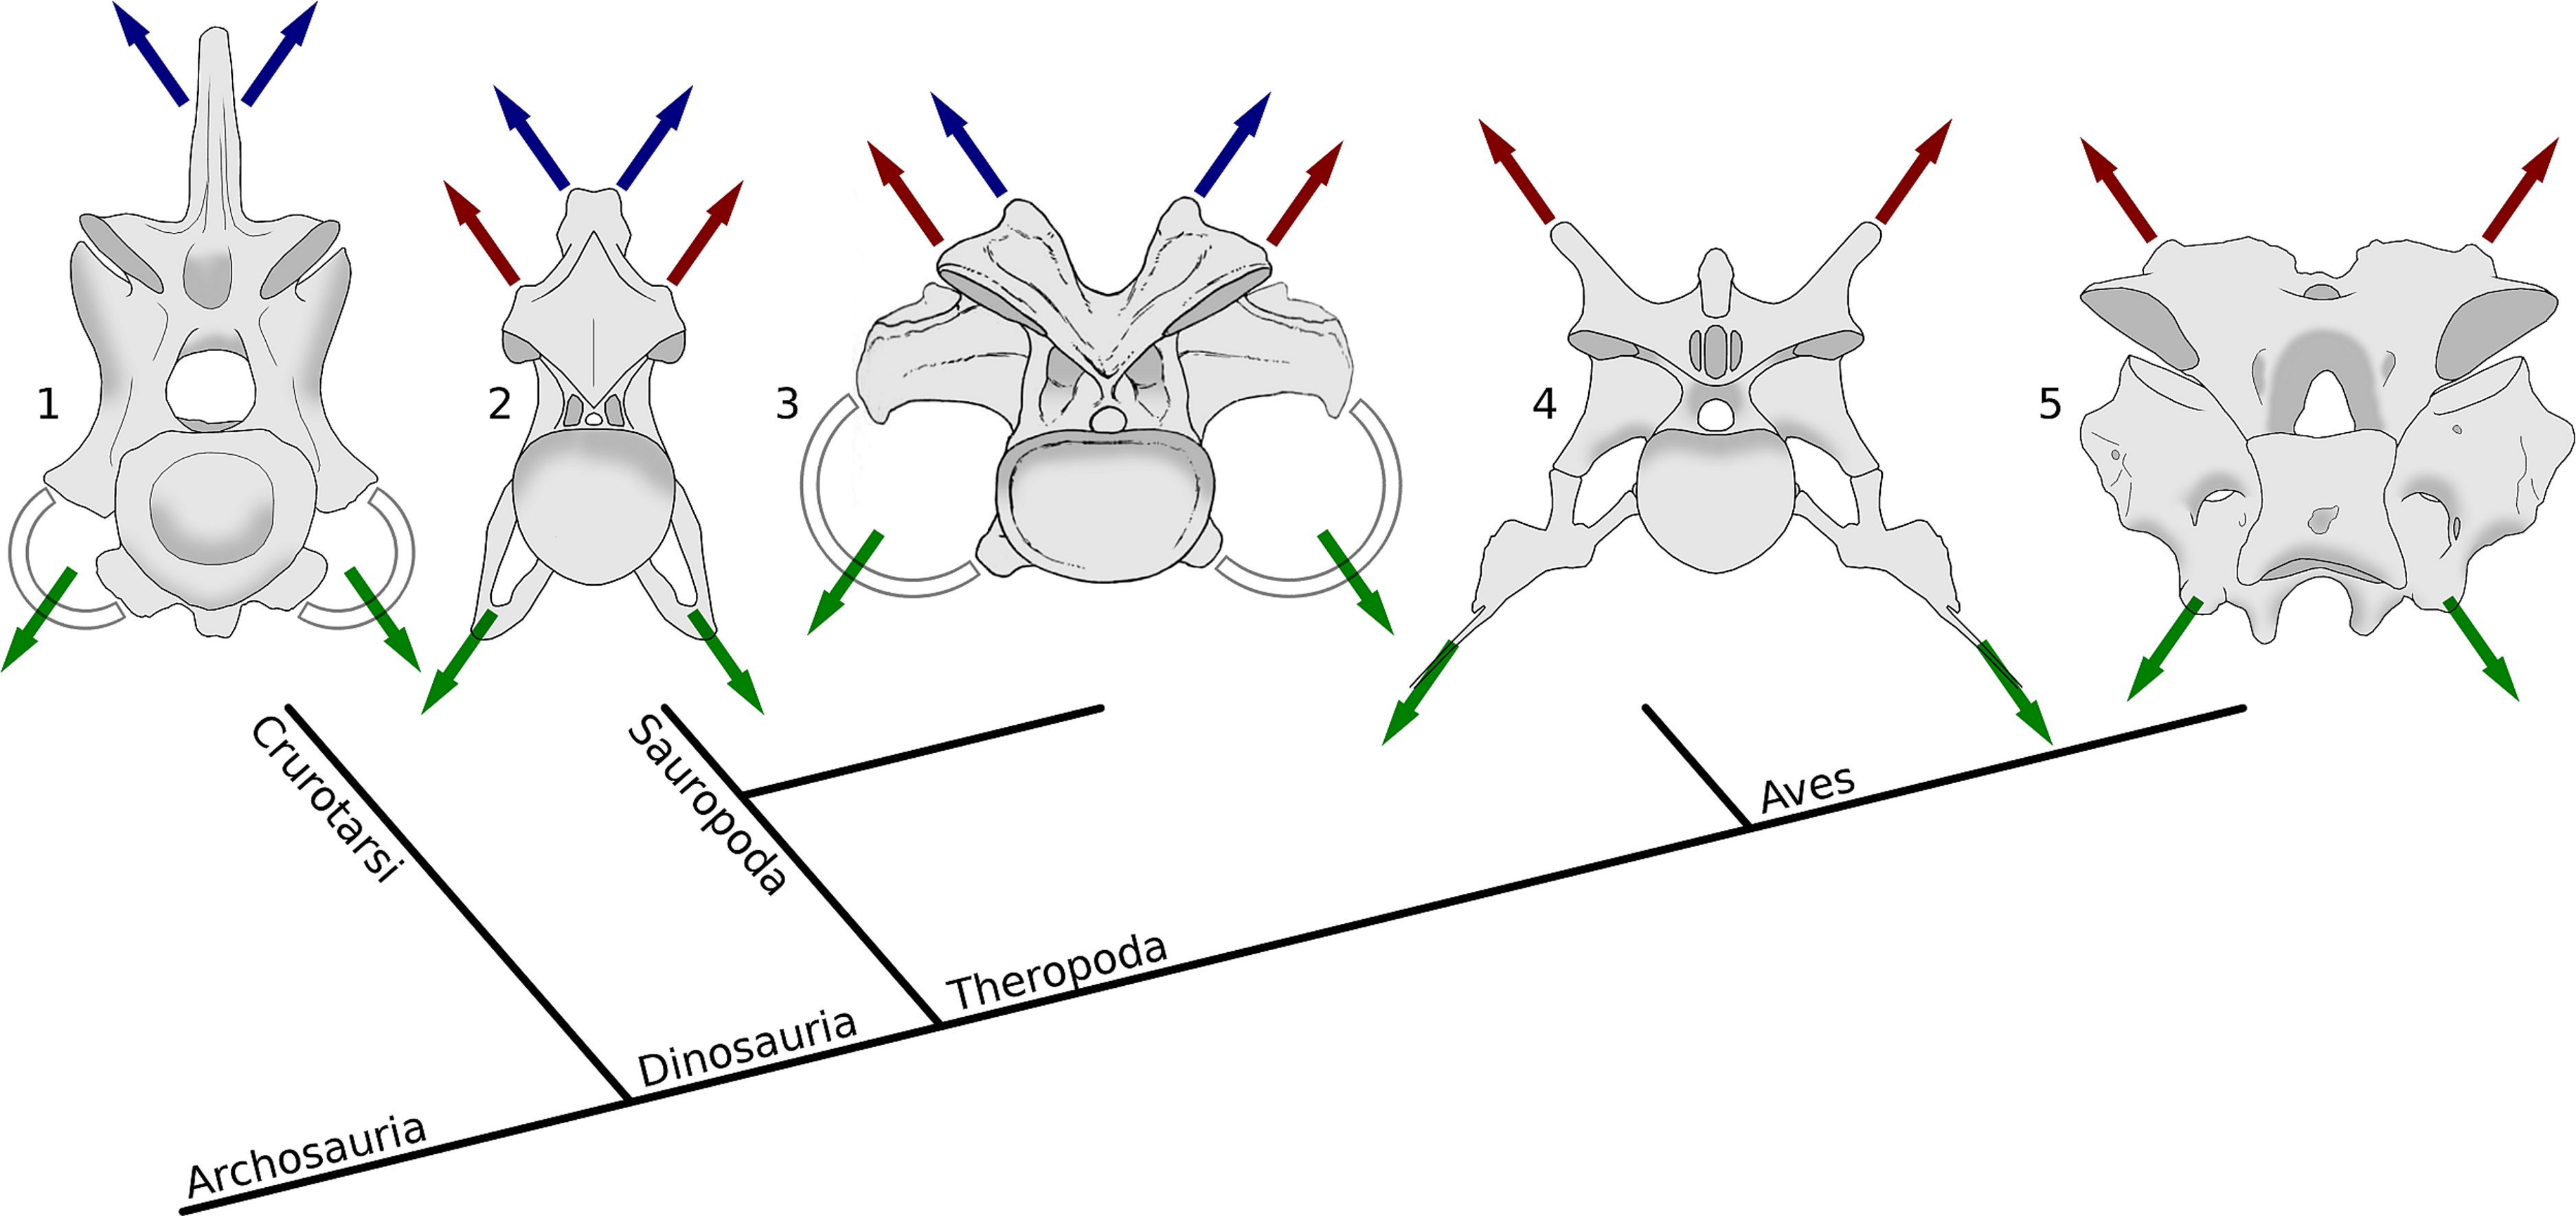 Why Sauropods Had Long Necks And Why Giraffes Have Short Necks Peerj